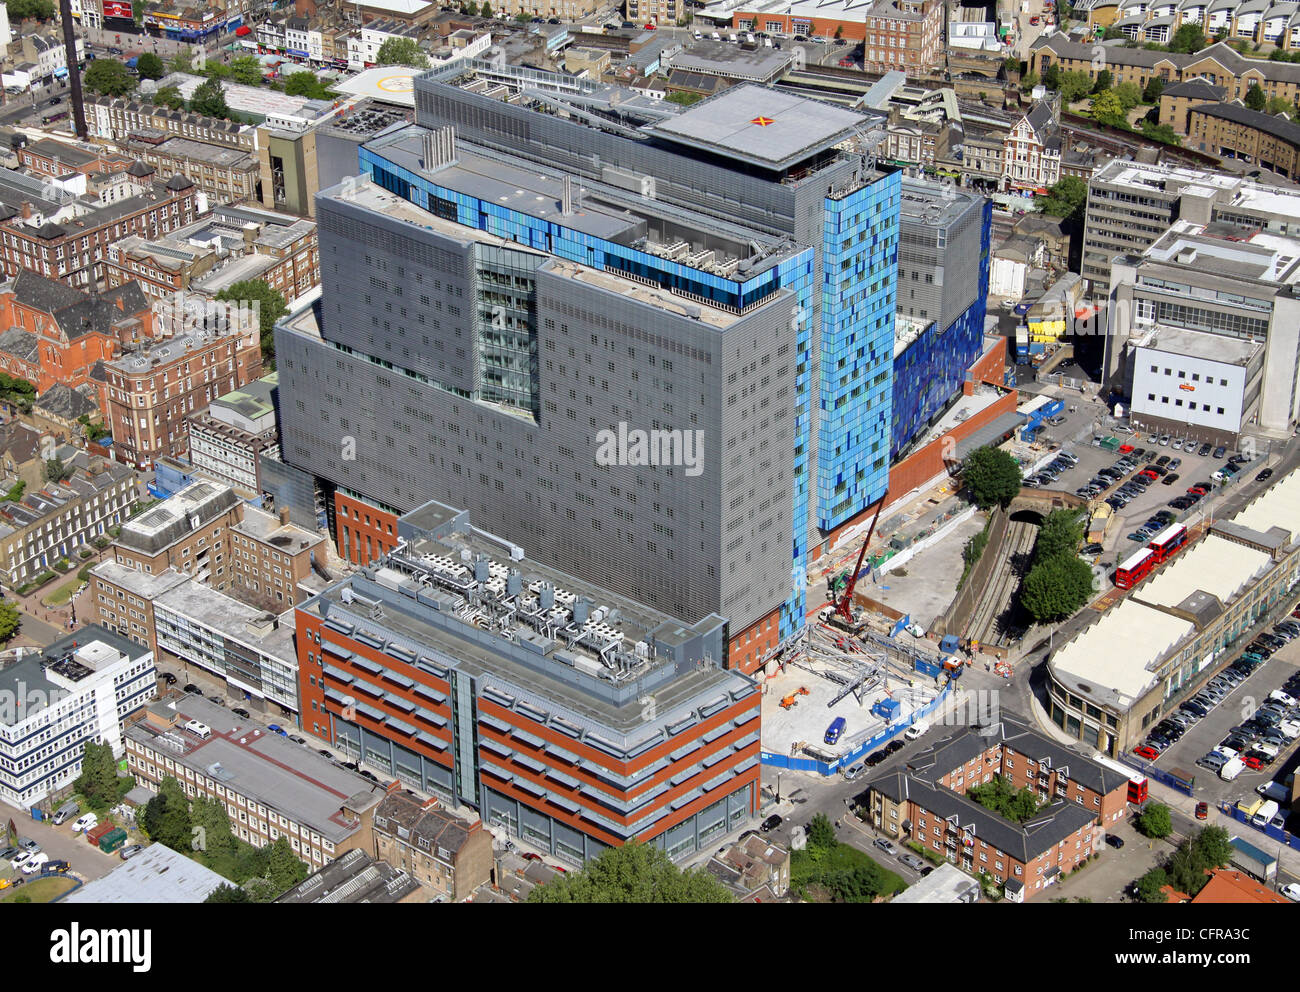 Aerial view of The Royal London Hospital - Stock Image